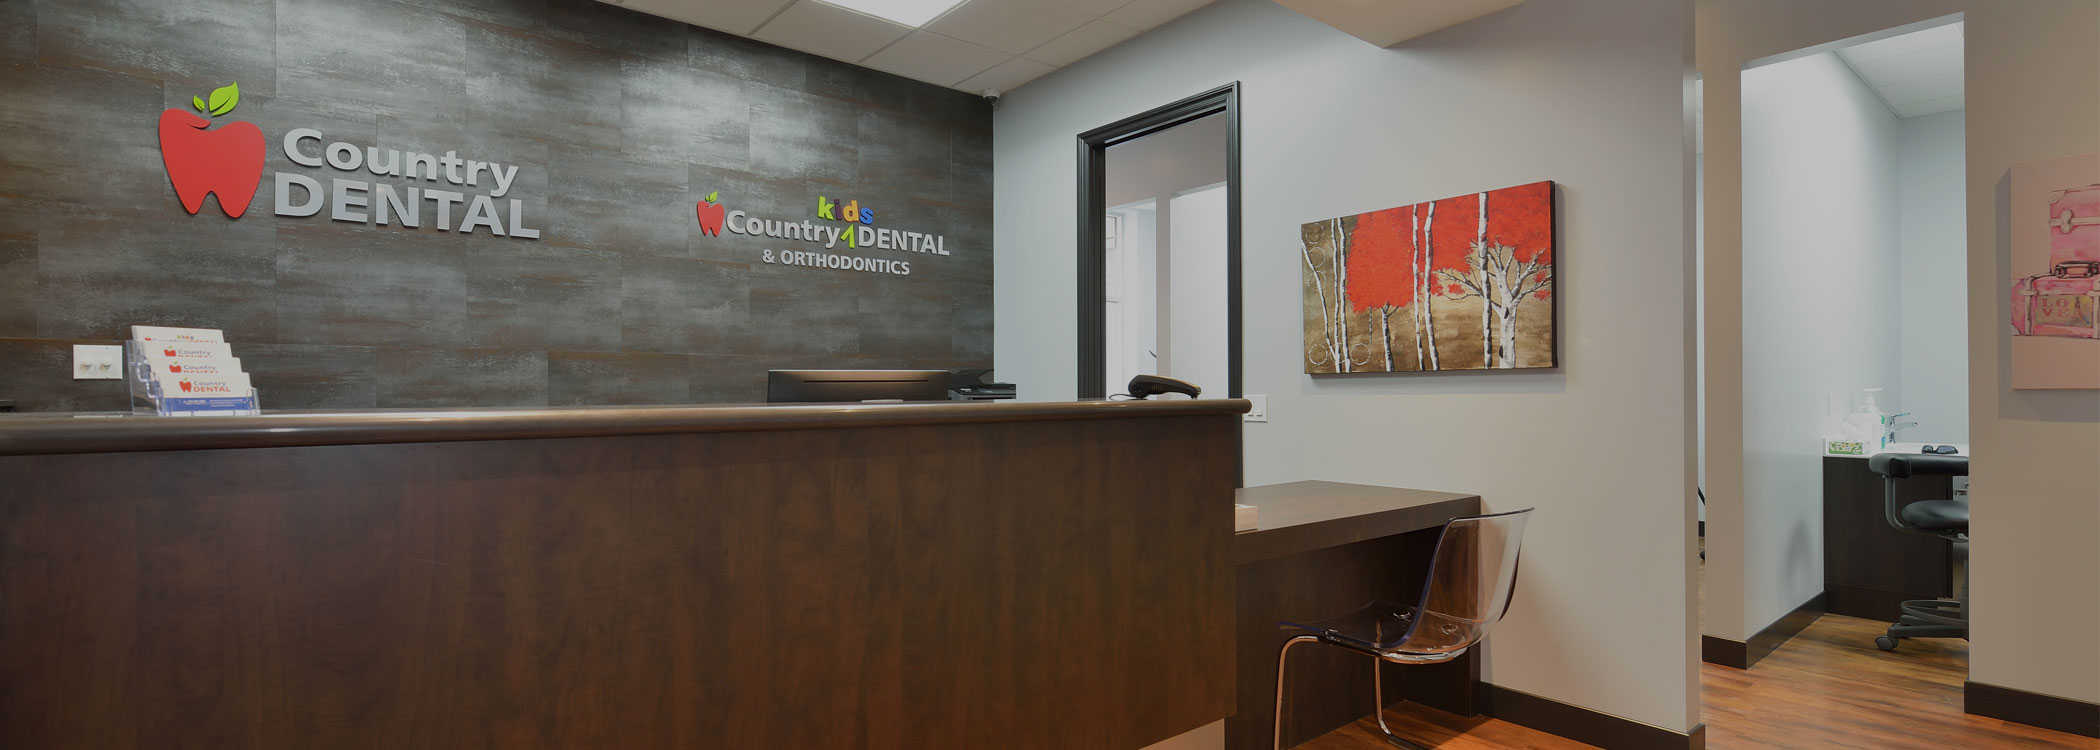 Fergus dental clinic reception at Country Dental Clinic